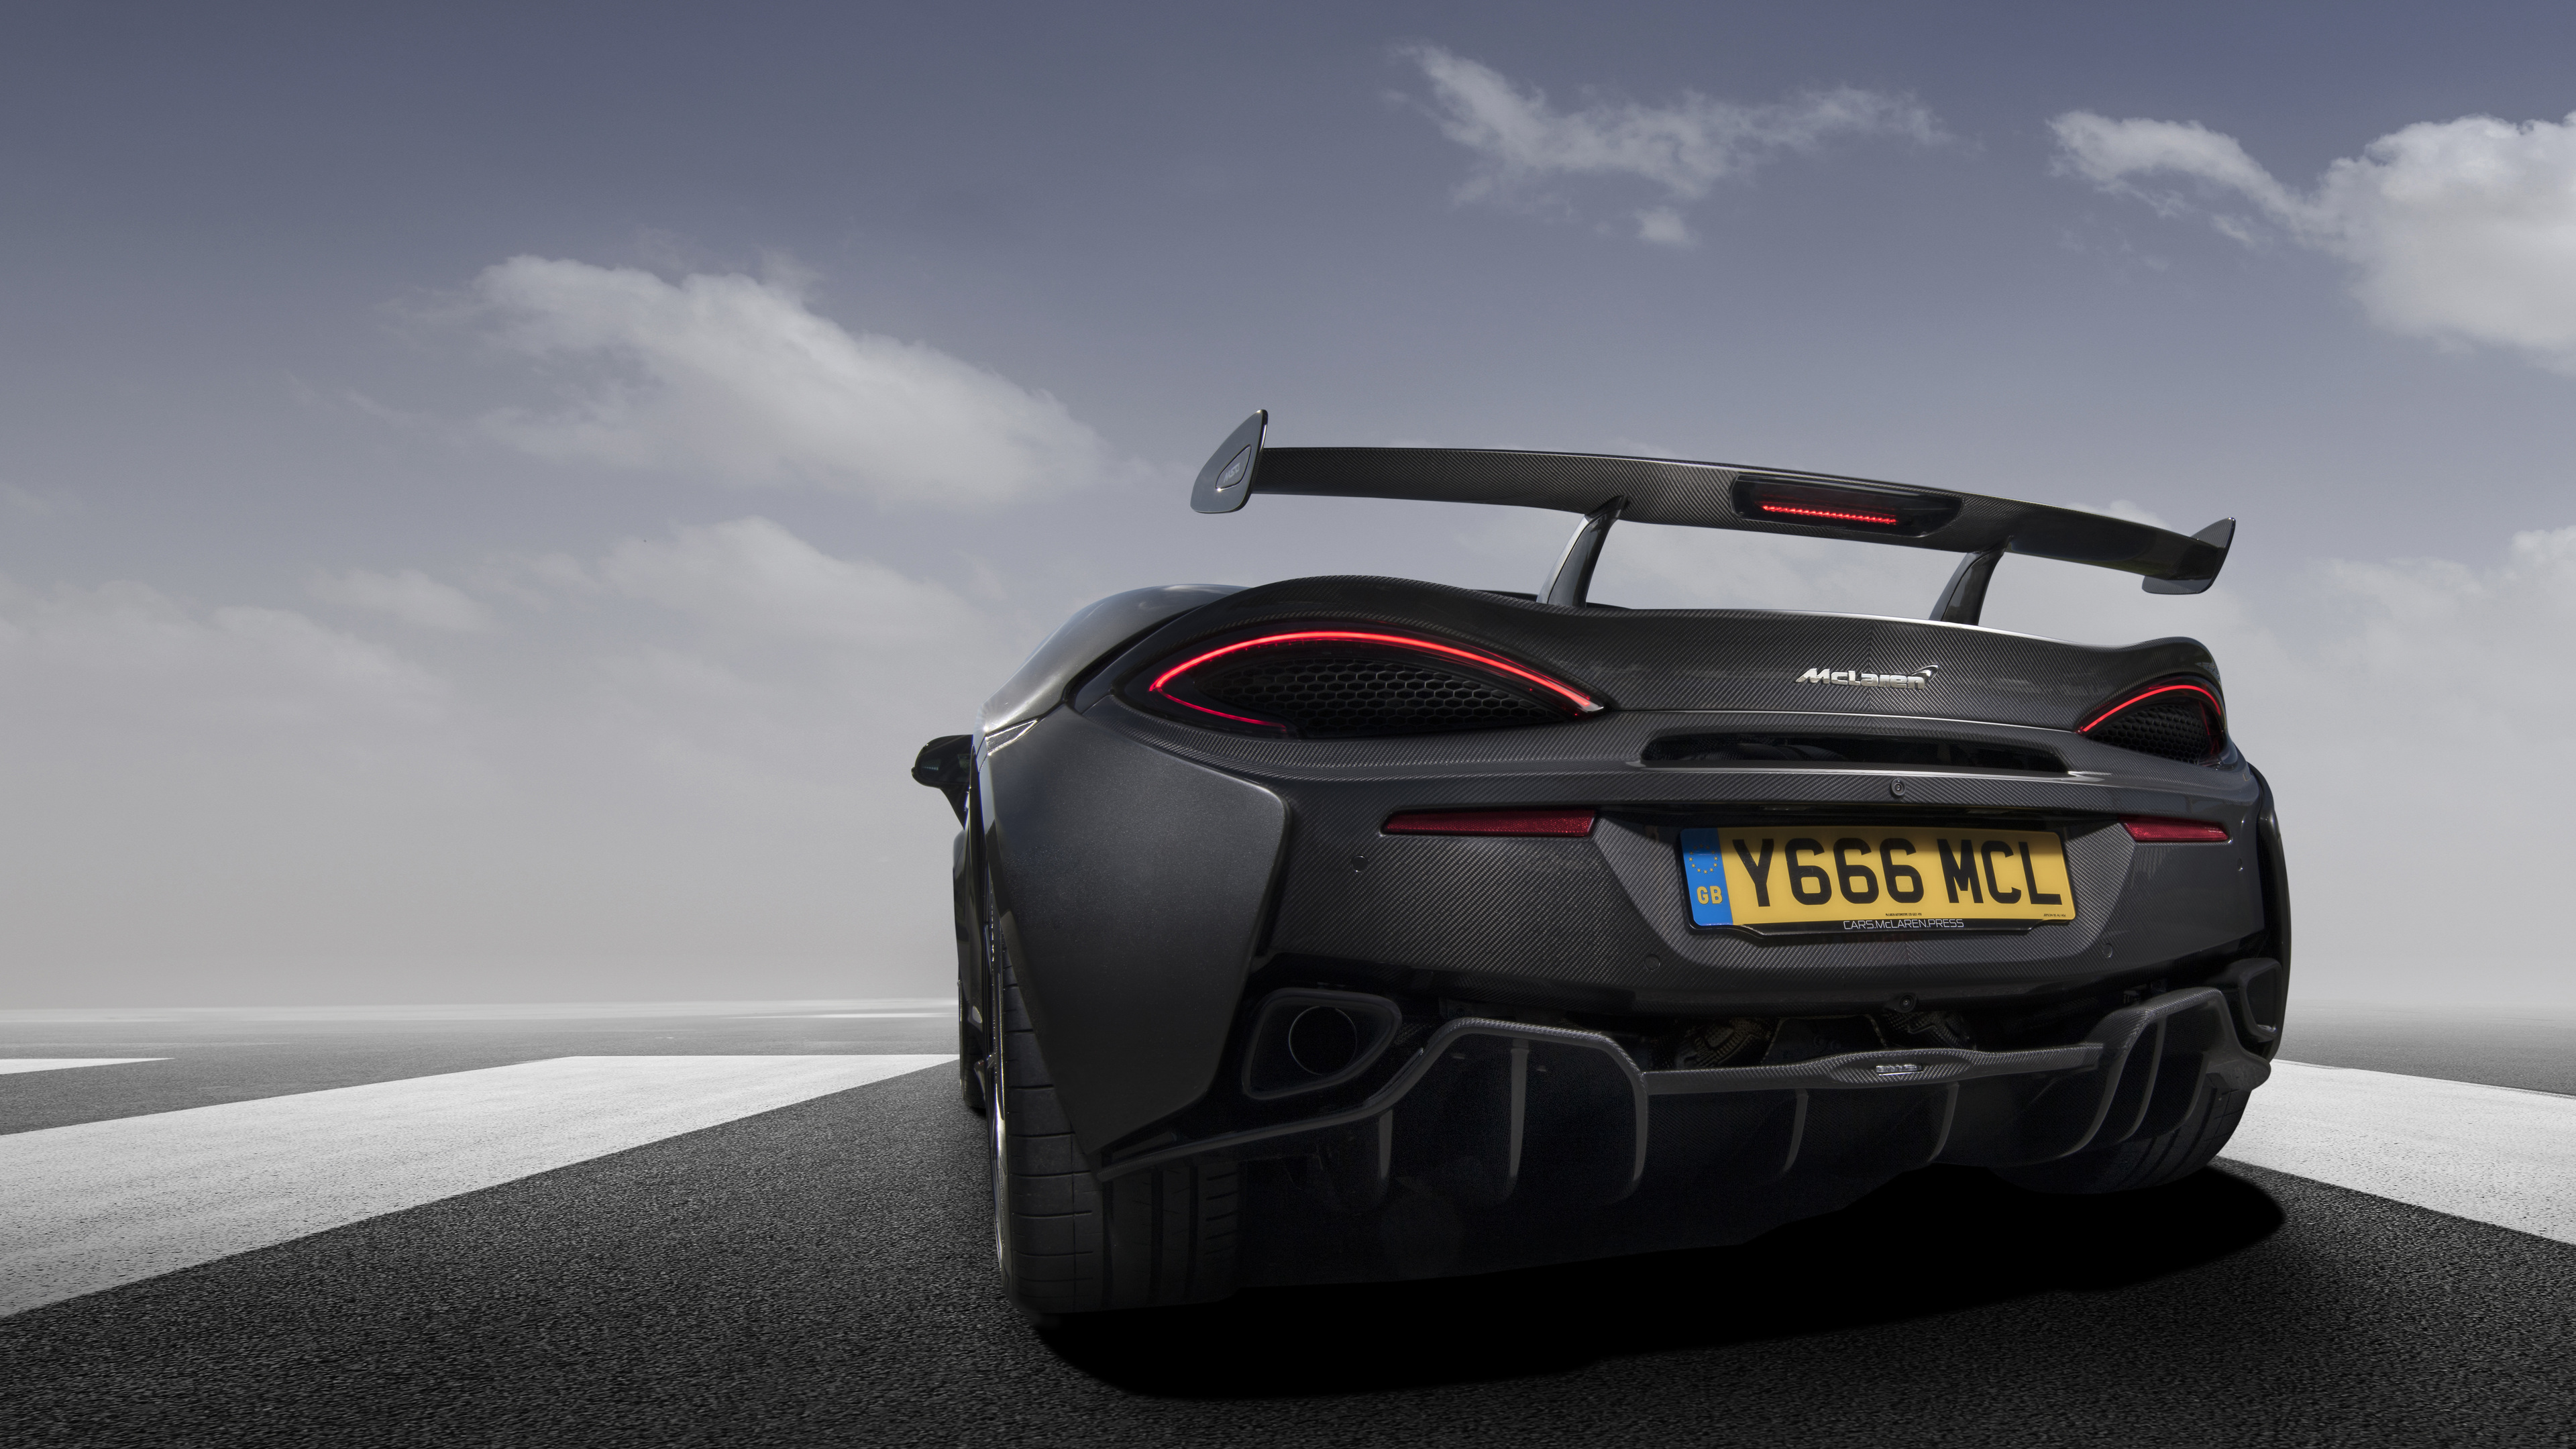 mso mclaren 570s coupe high downforce kit 2019 1562107911 - MSO McLaren 570S Coupe High Downforce Kit 2019 - mclaren wallpapers, mclaren 570s spider wallpapers, hd-wallpapers, cars wallpapers, 8k wallpapers, 5k wallpapers, 4k-wallpapers, 2019 cars wallpapers